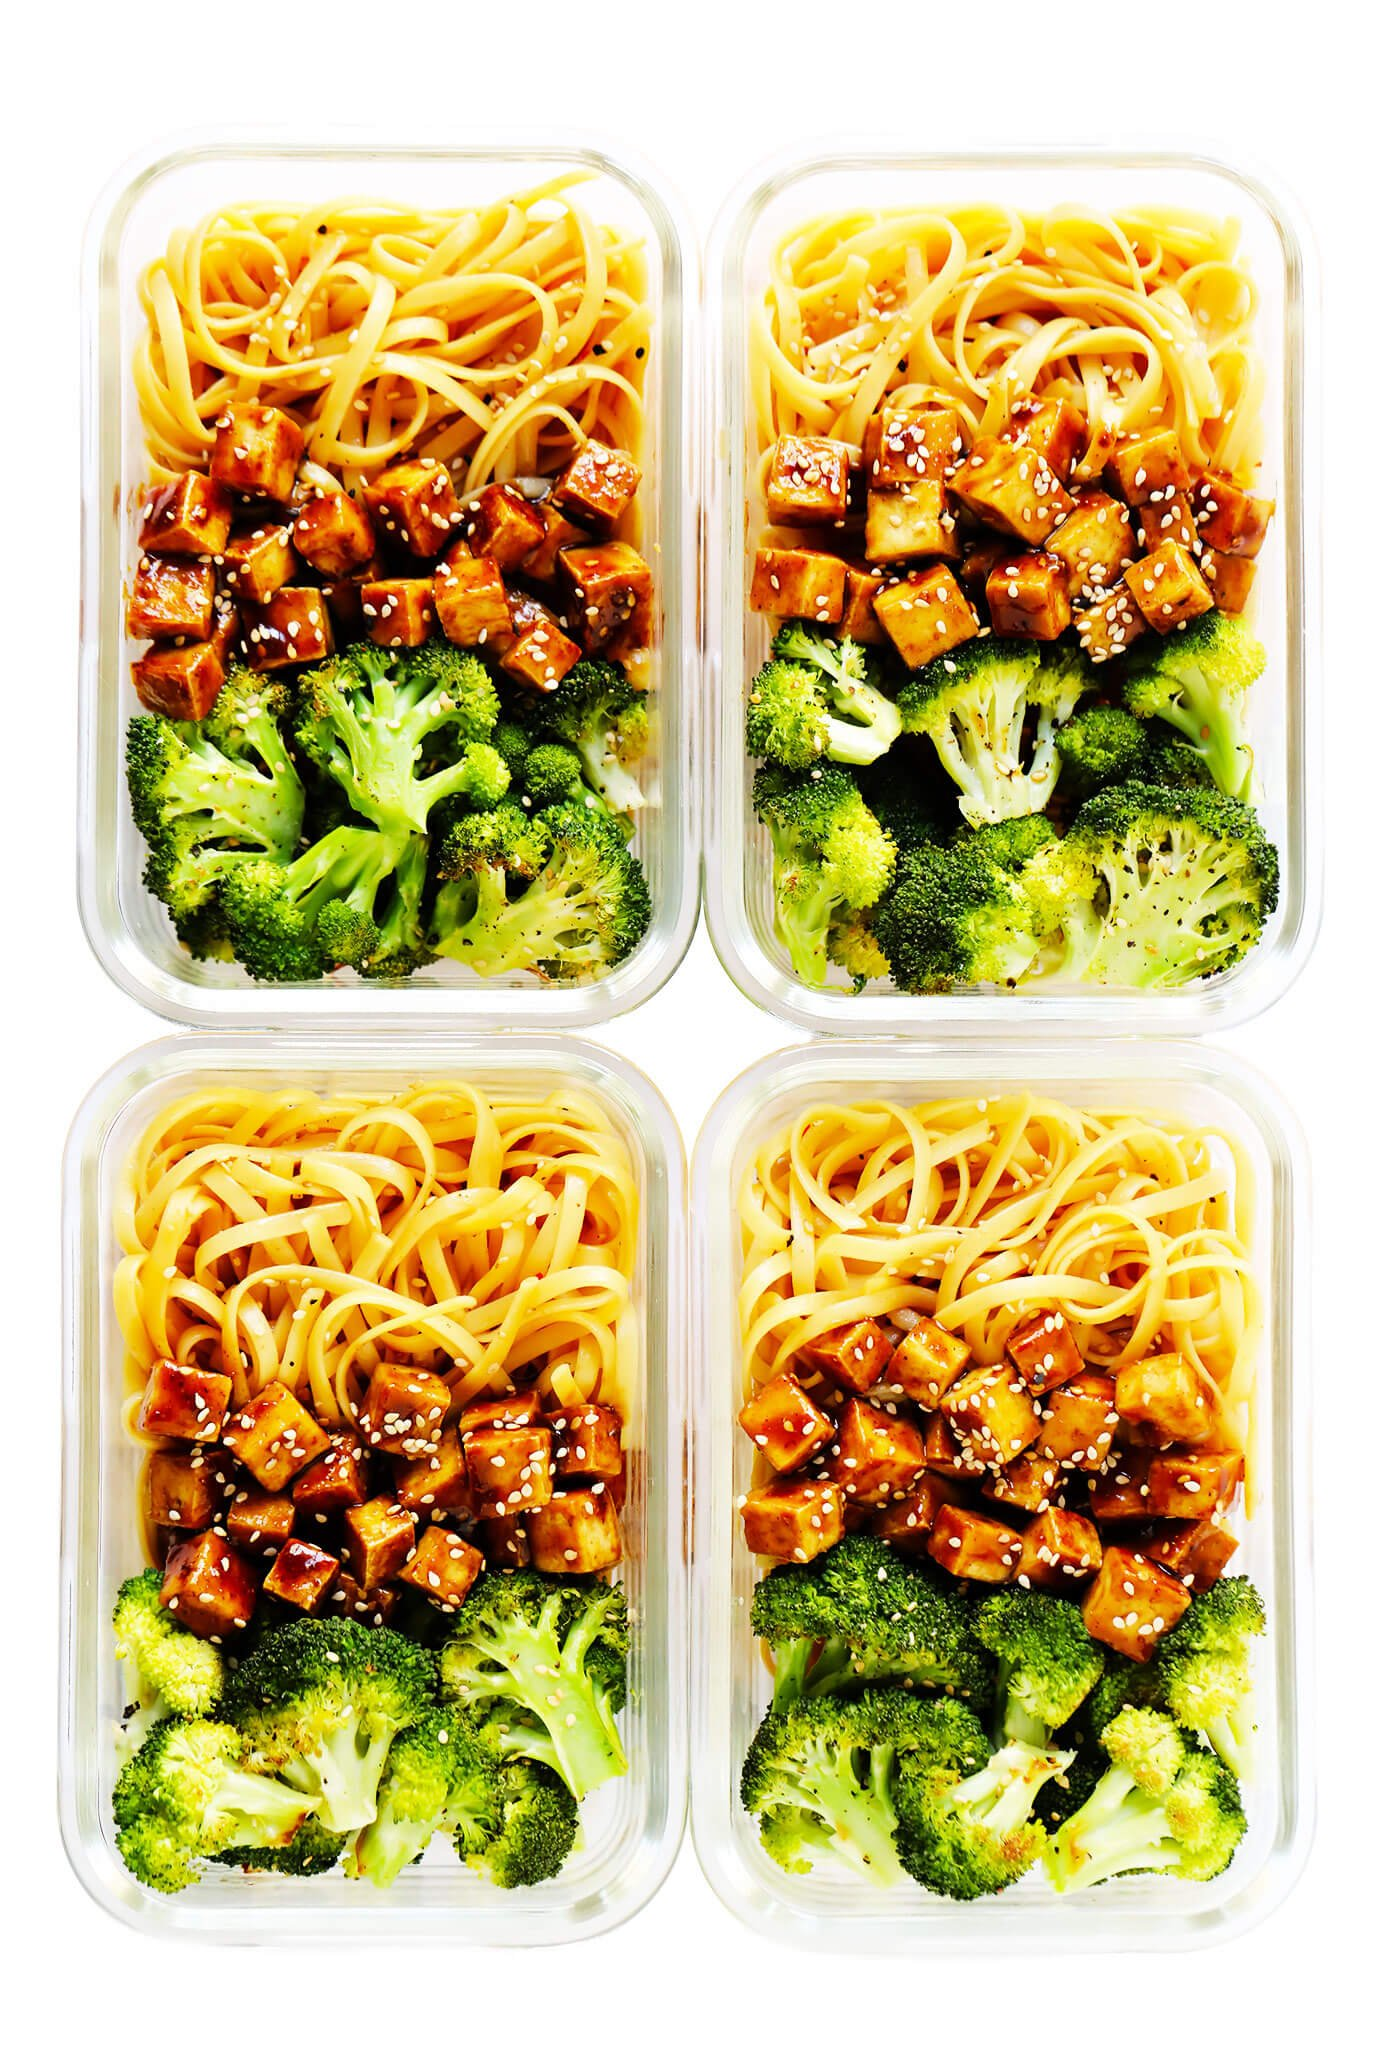 Crispy Tofu Sesame Noodle Bowls in Meal Prep Containers